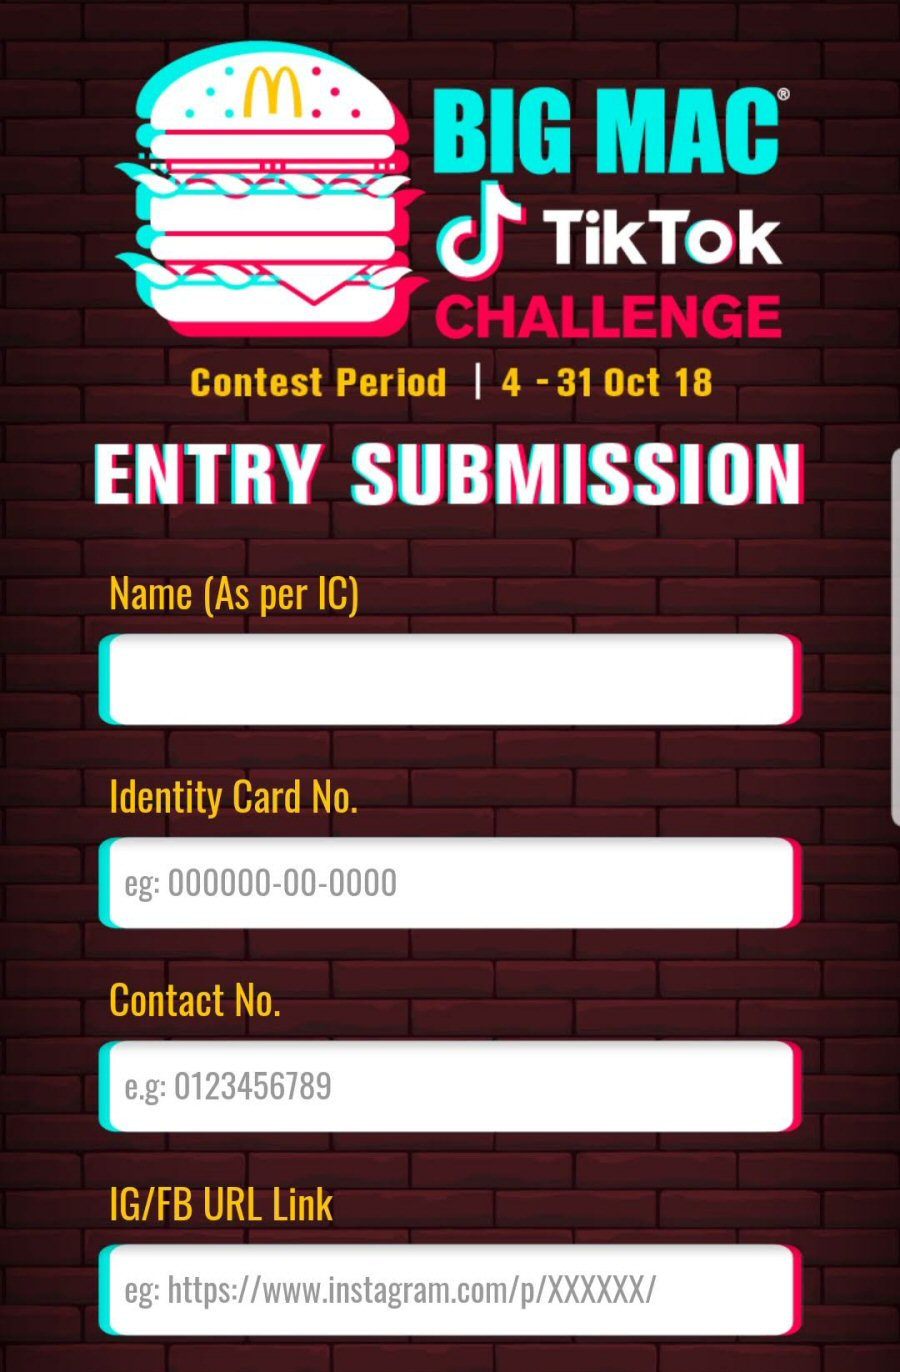 Big Mac x TikTok Challenge: How to submit entry?